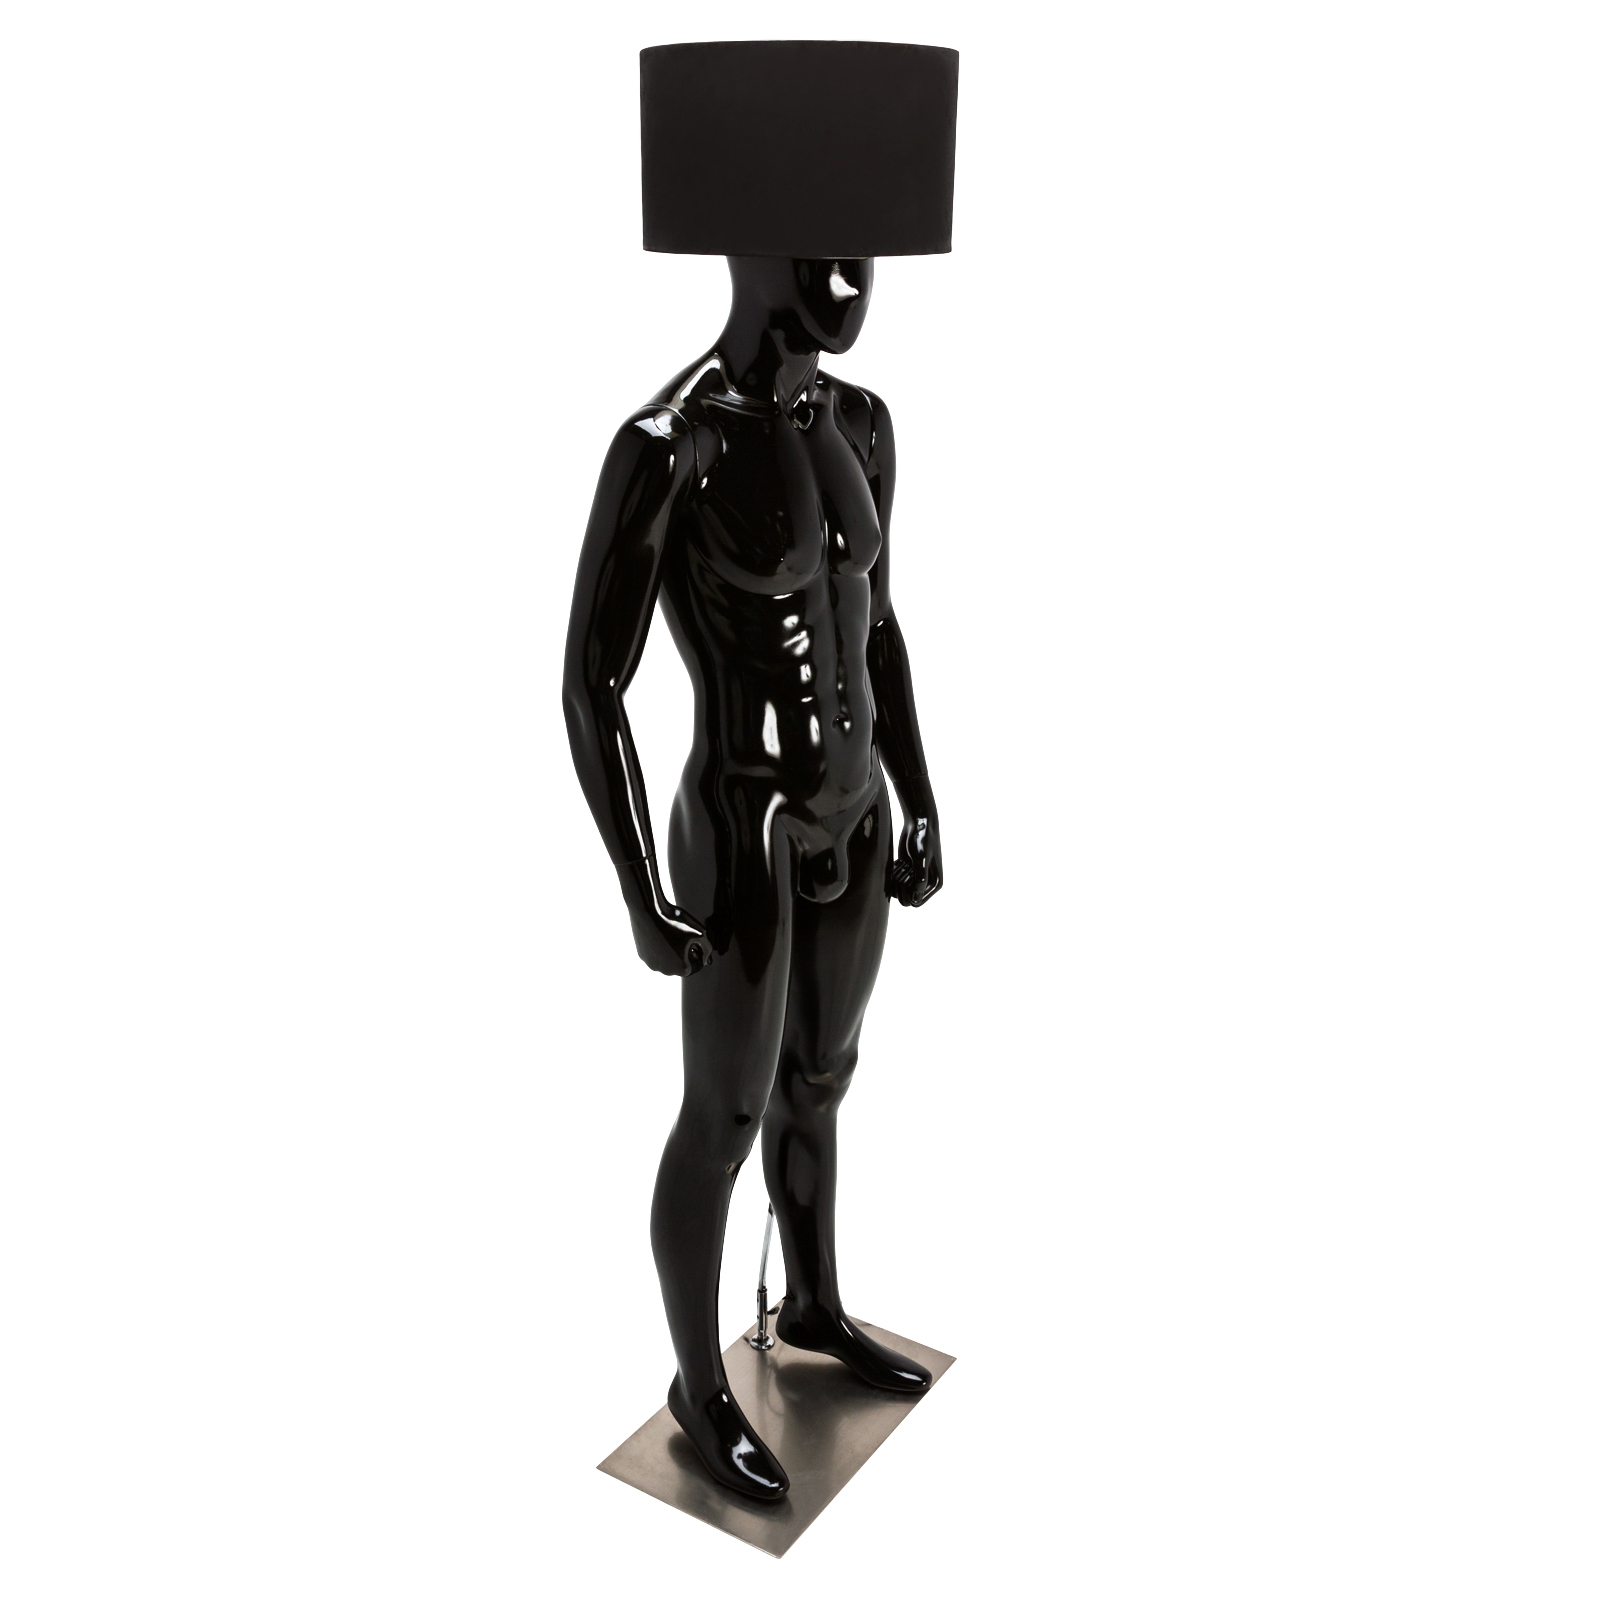 this is the related images of Mannequin Lamp